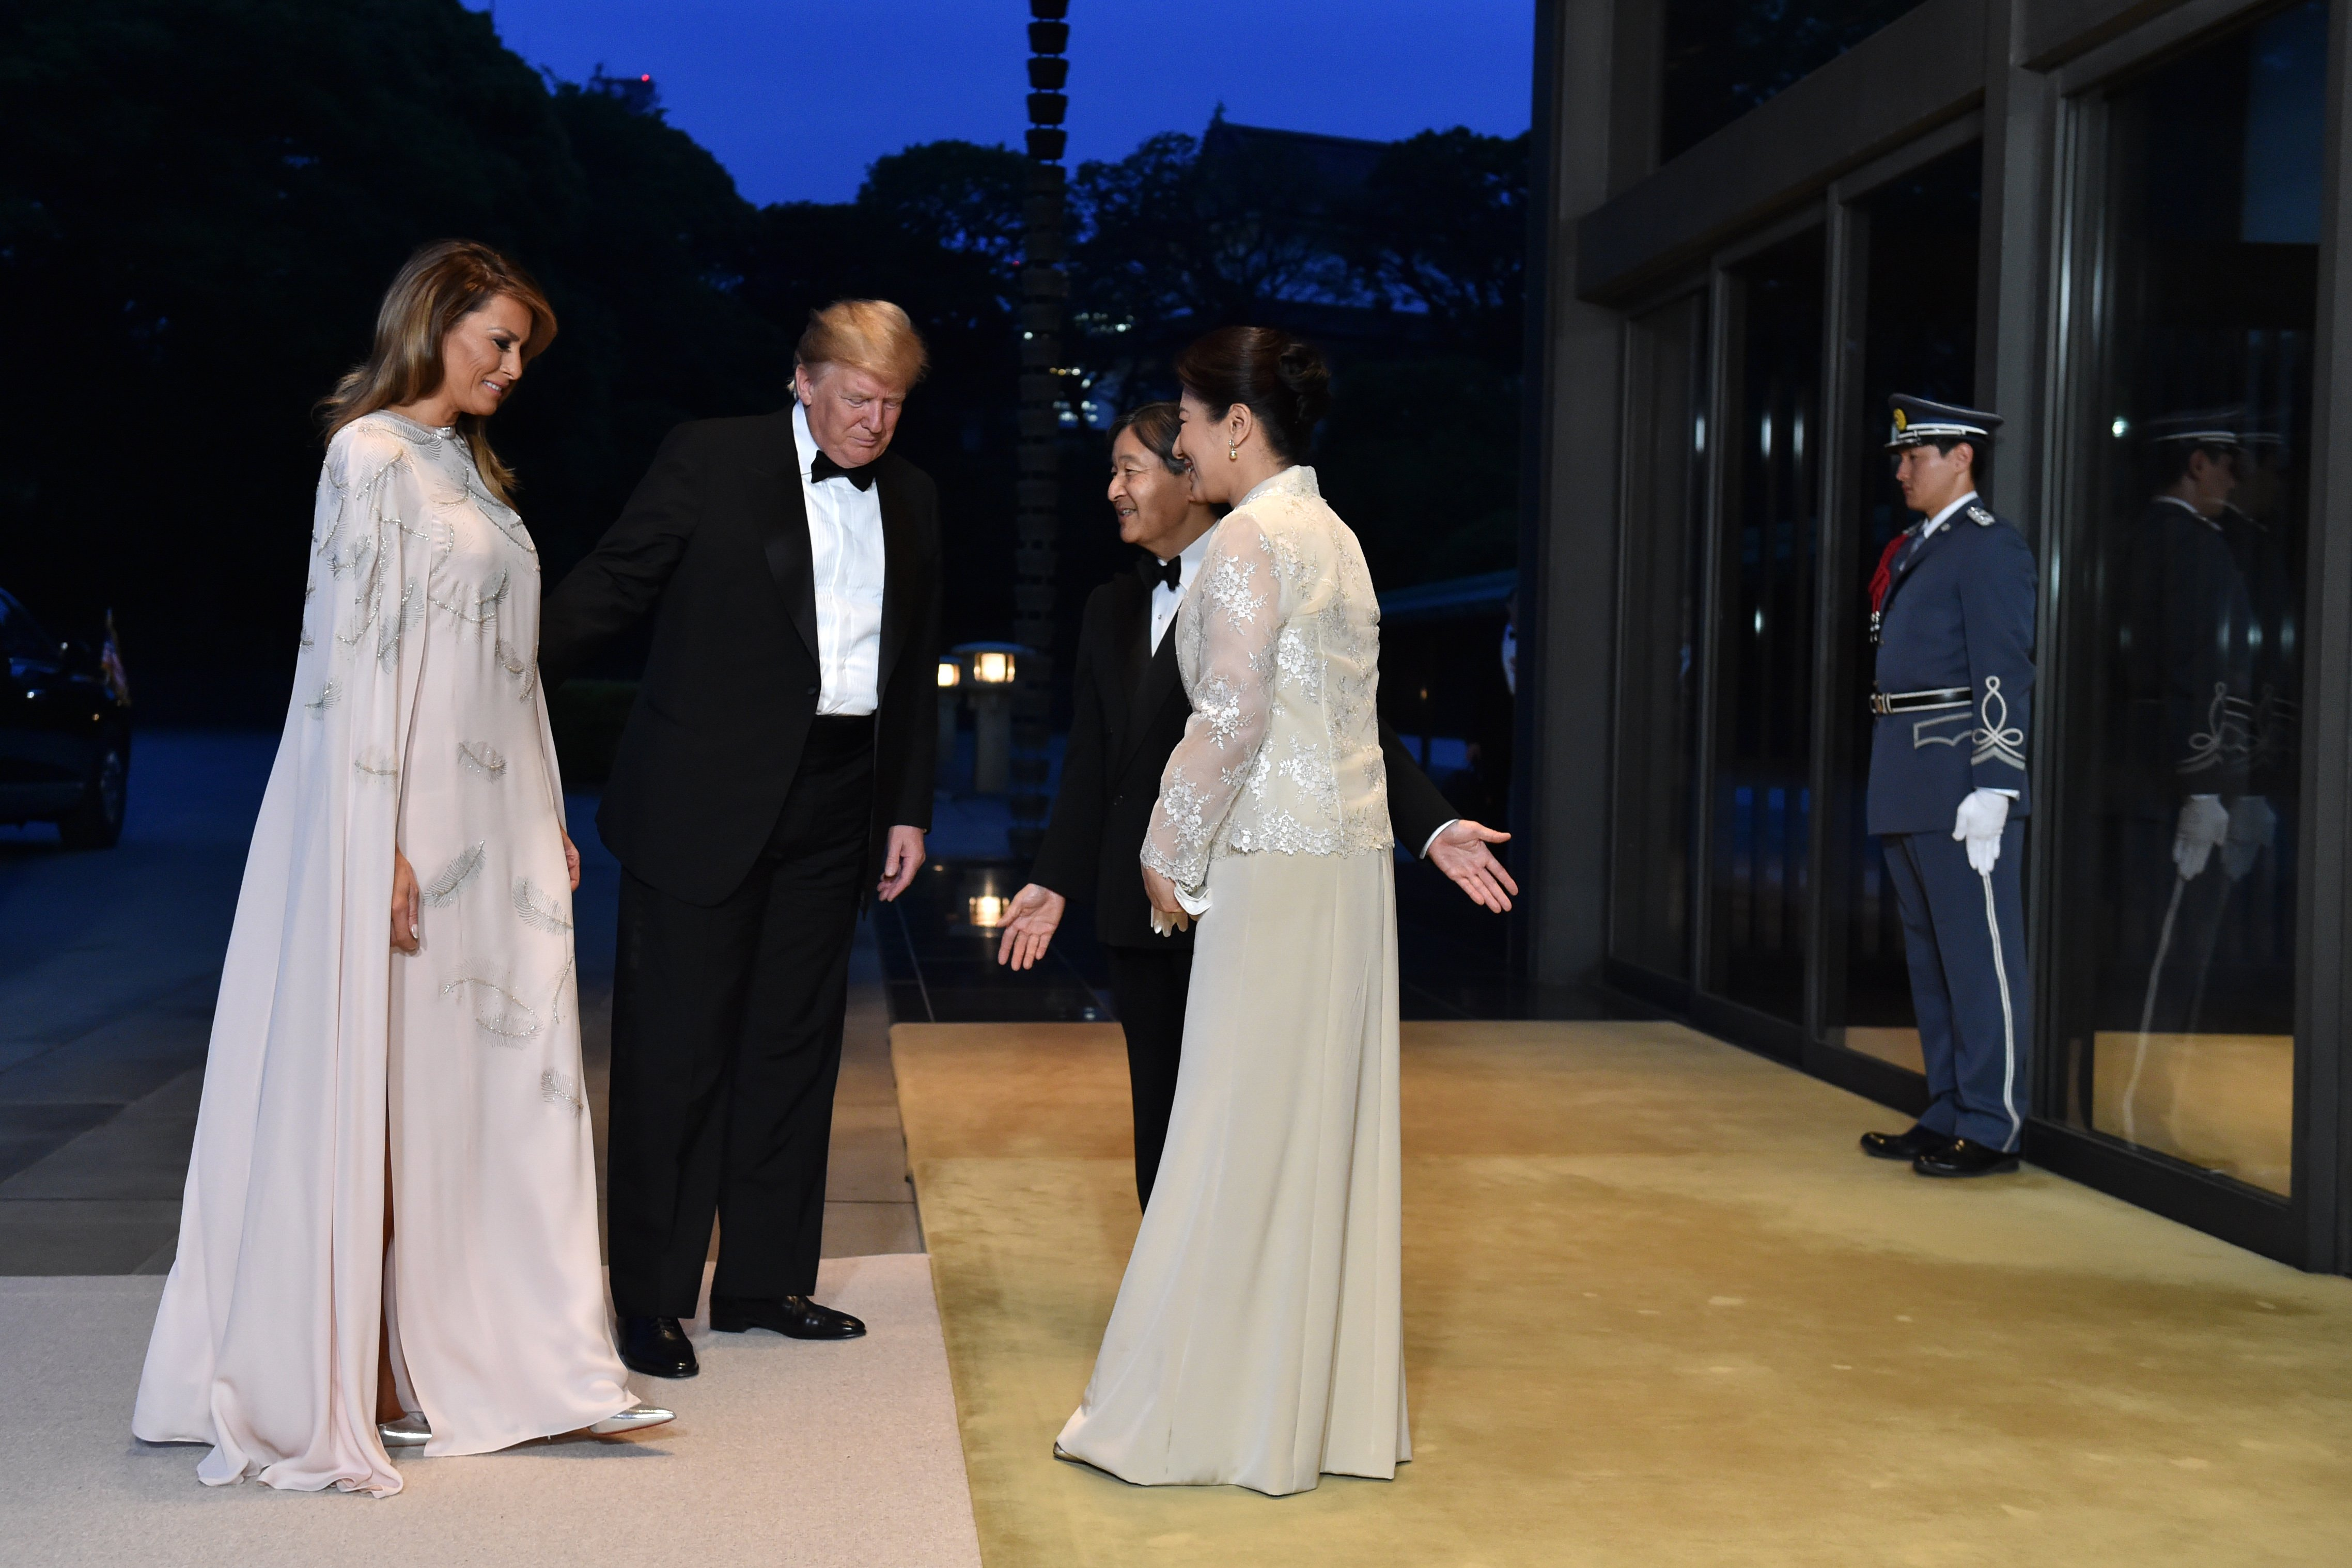 Donald Trump and Melania Trump being greeted by Japan's Emperor Naruhito and Empress Masako at the Imperial Palace in Tokyo, Japan | Photo: Getty Images